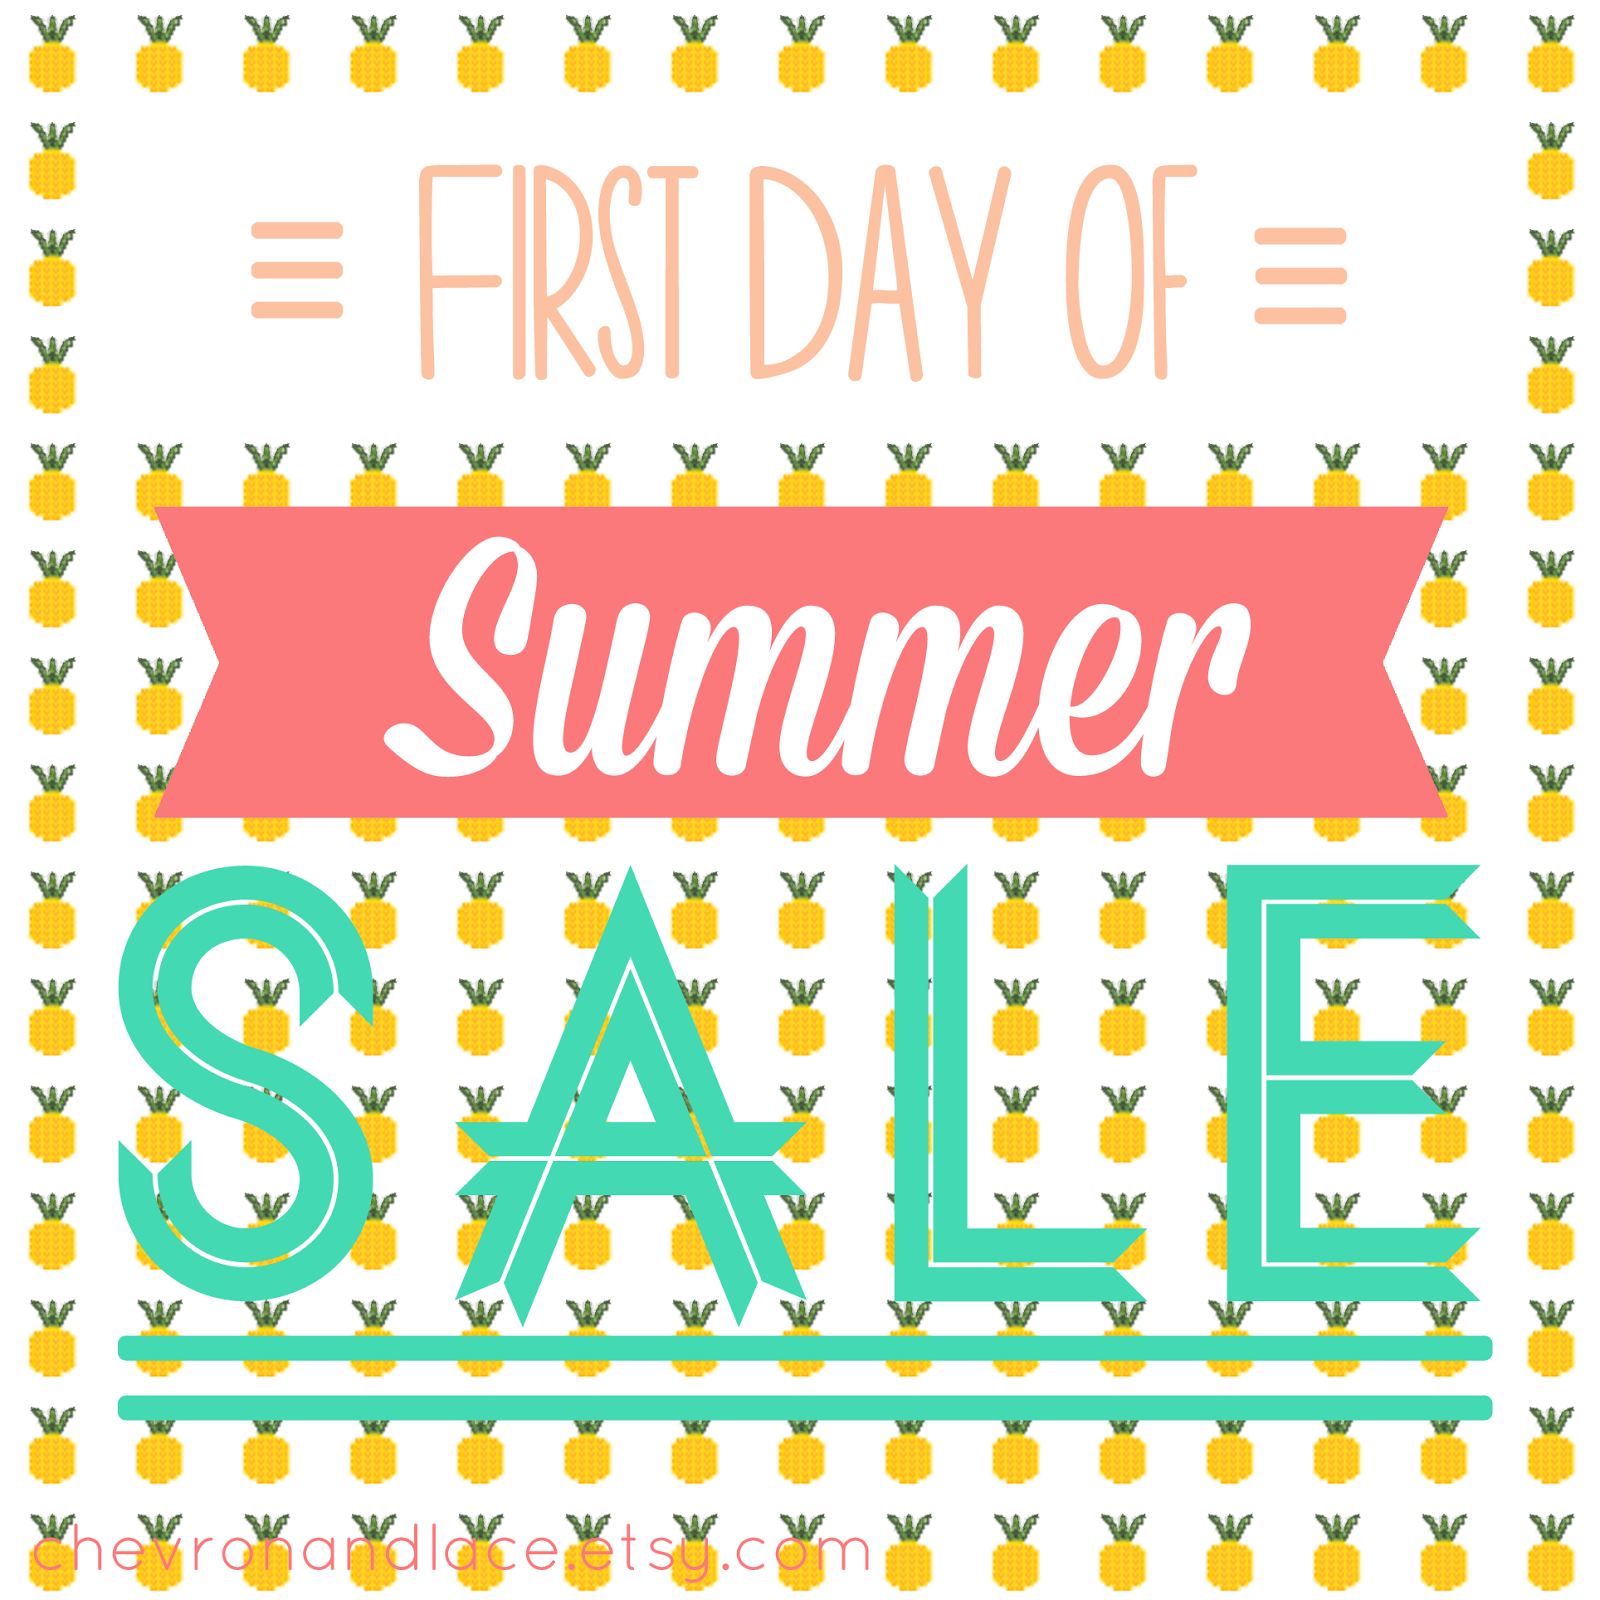 First Day of Summer Maxi Skirt Sale - Sues News